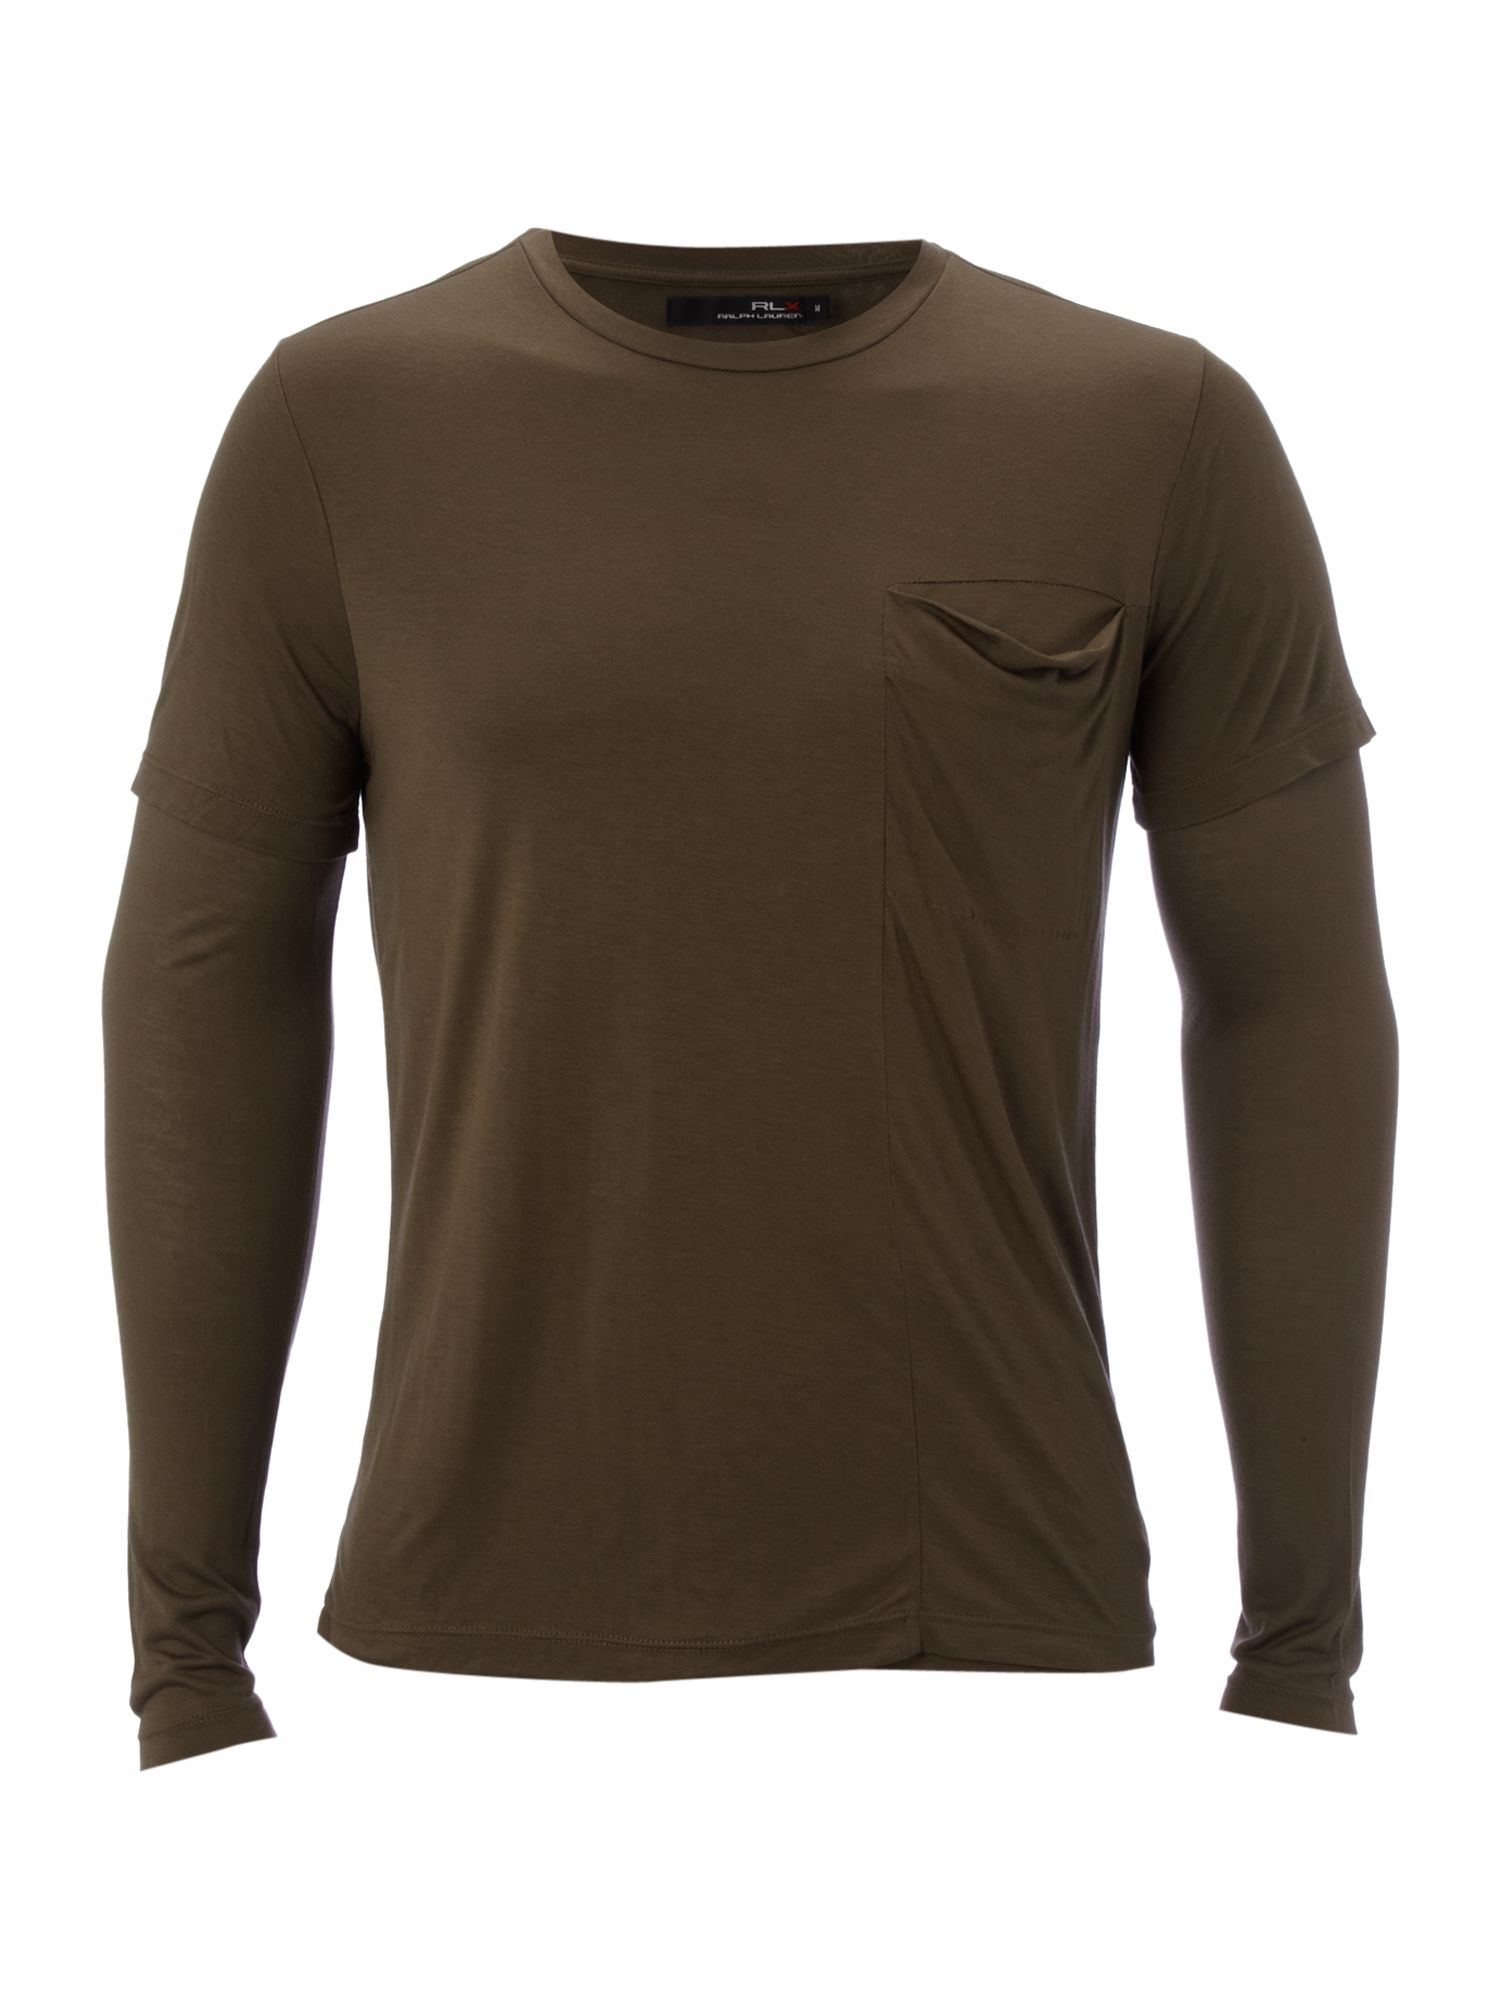 RLX Long-sleeved double layer T-shirt - Olive product image